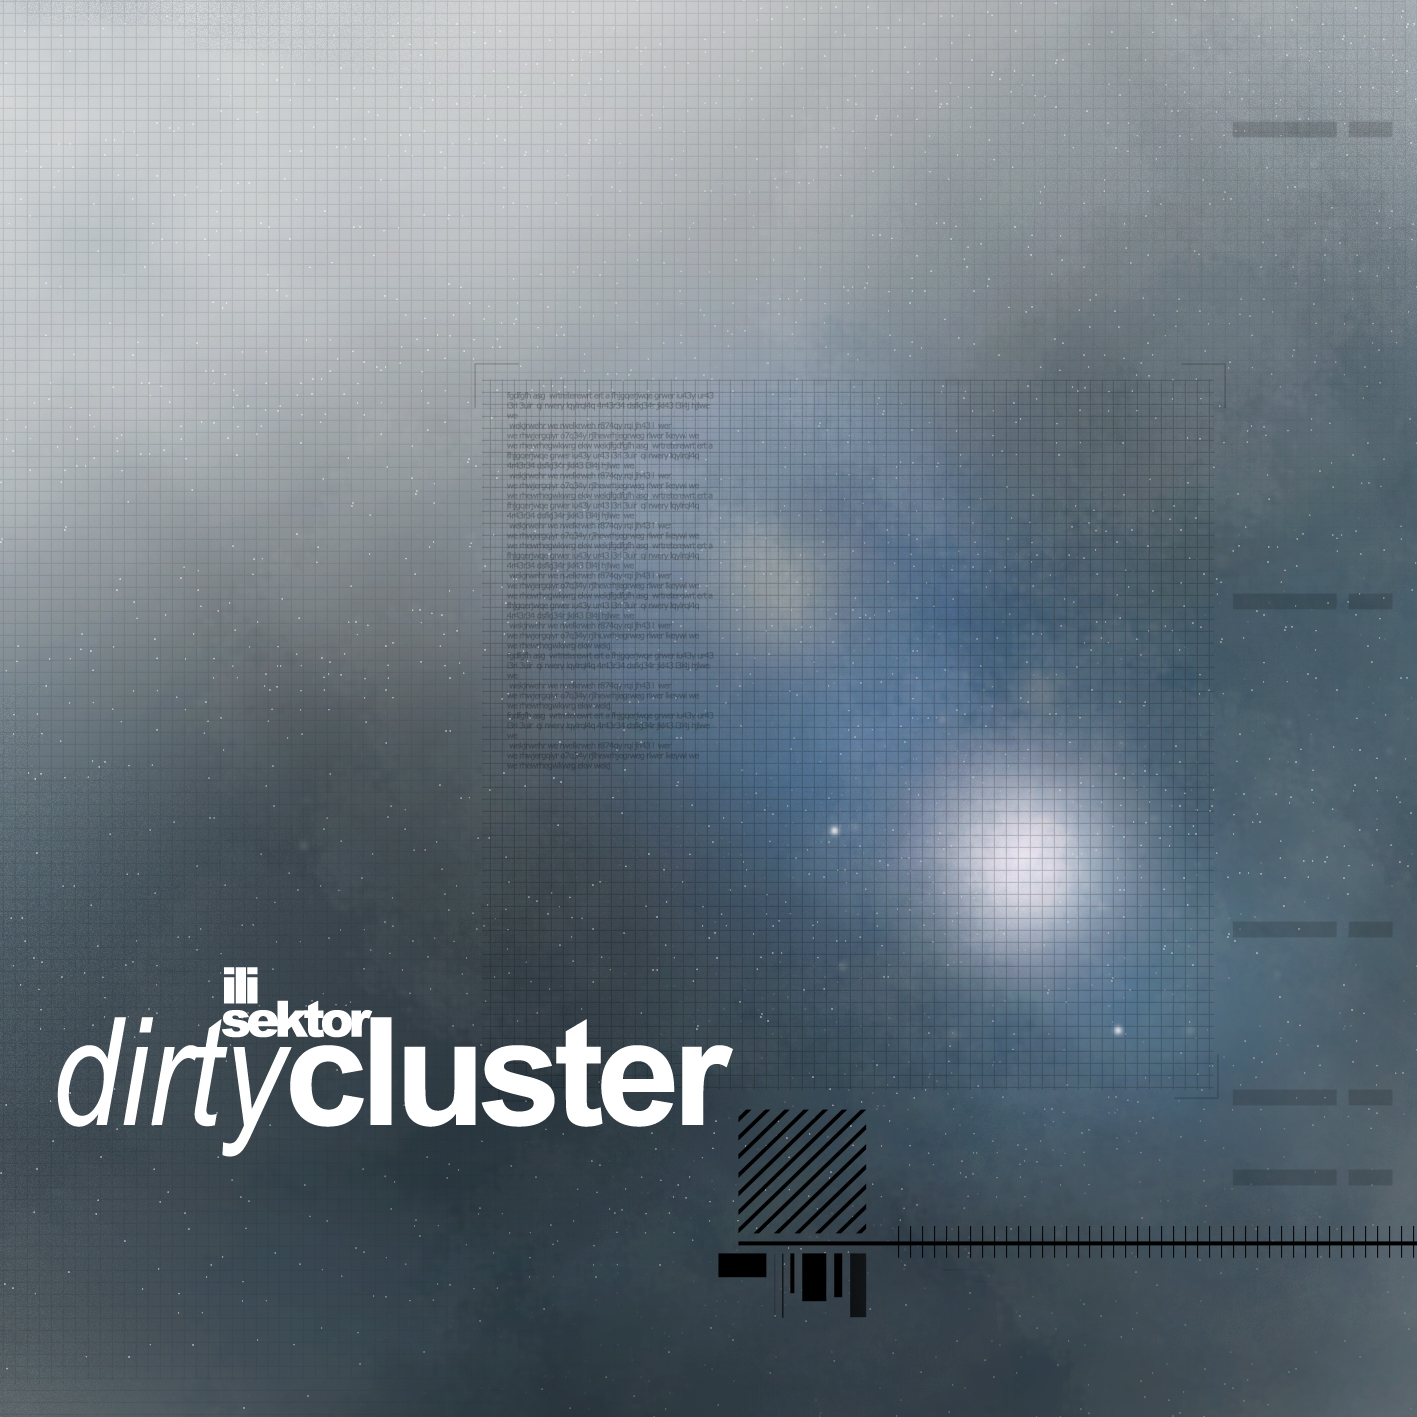 Cover of Dirty cluster